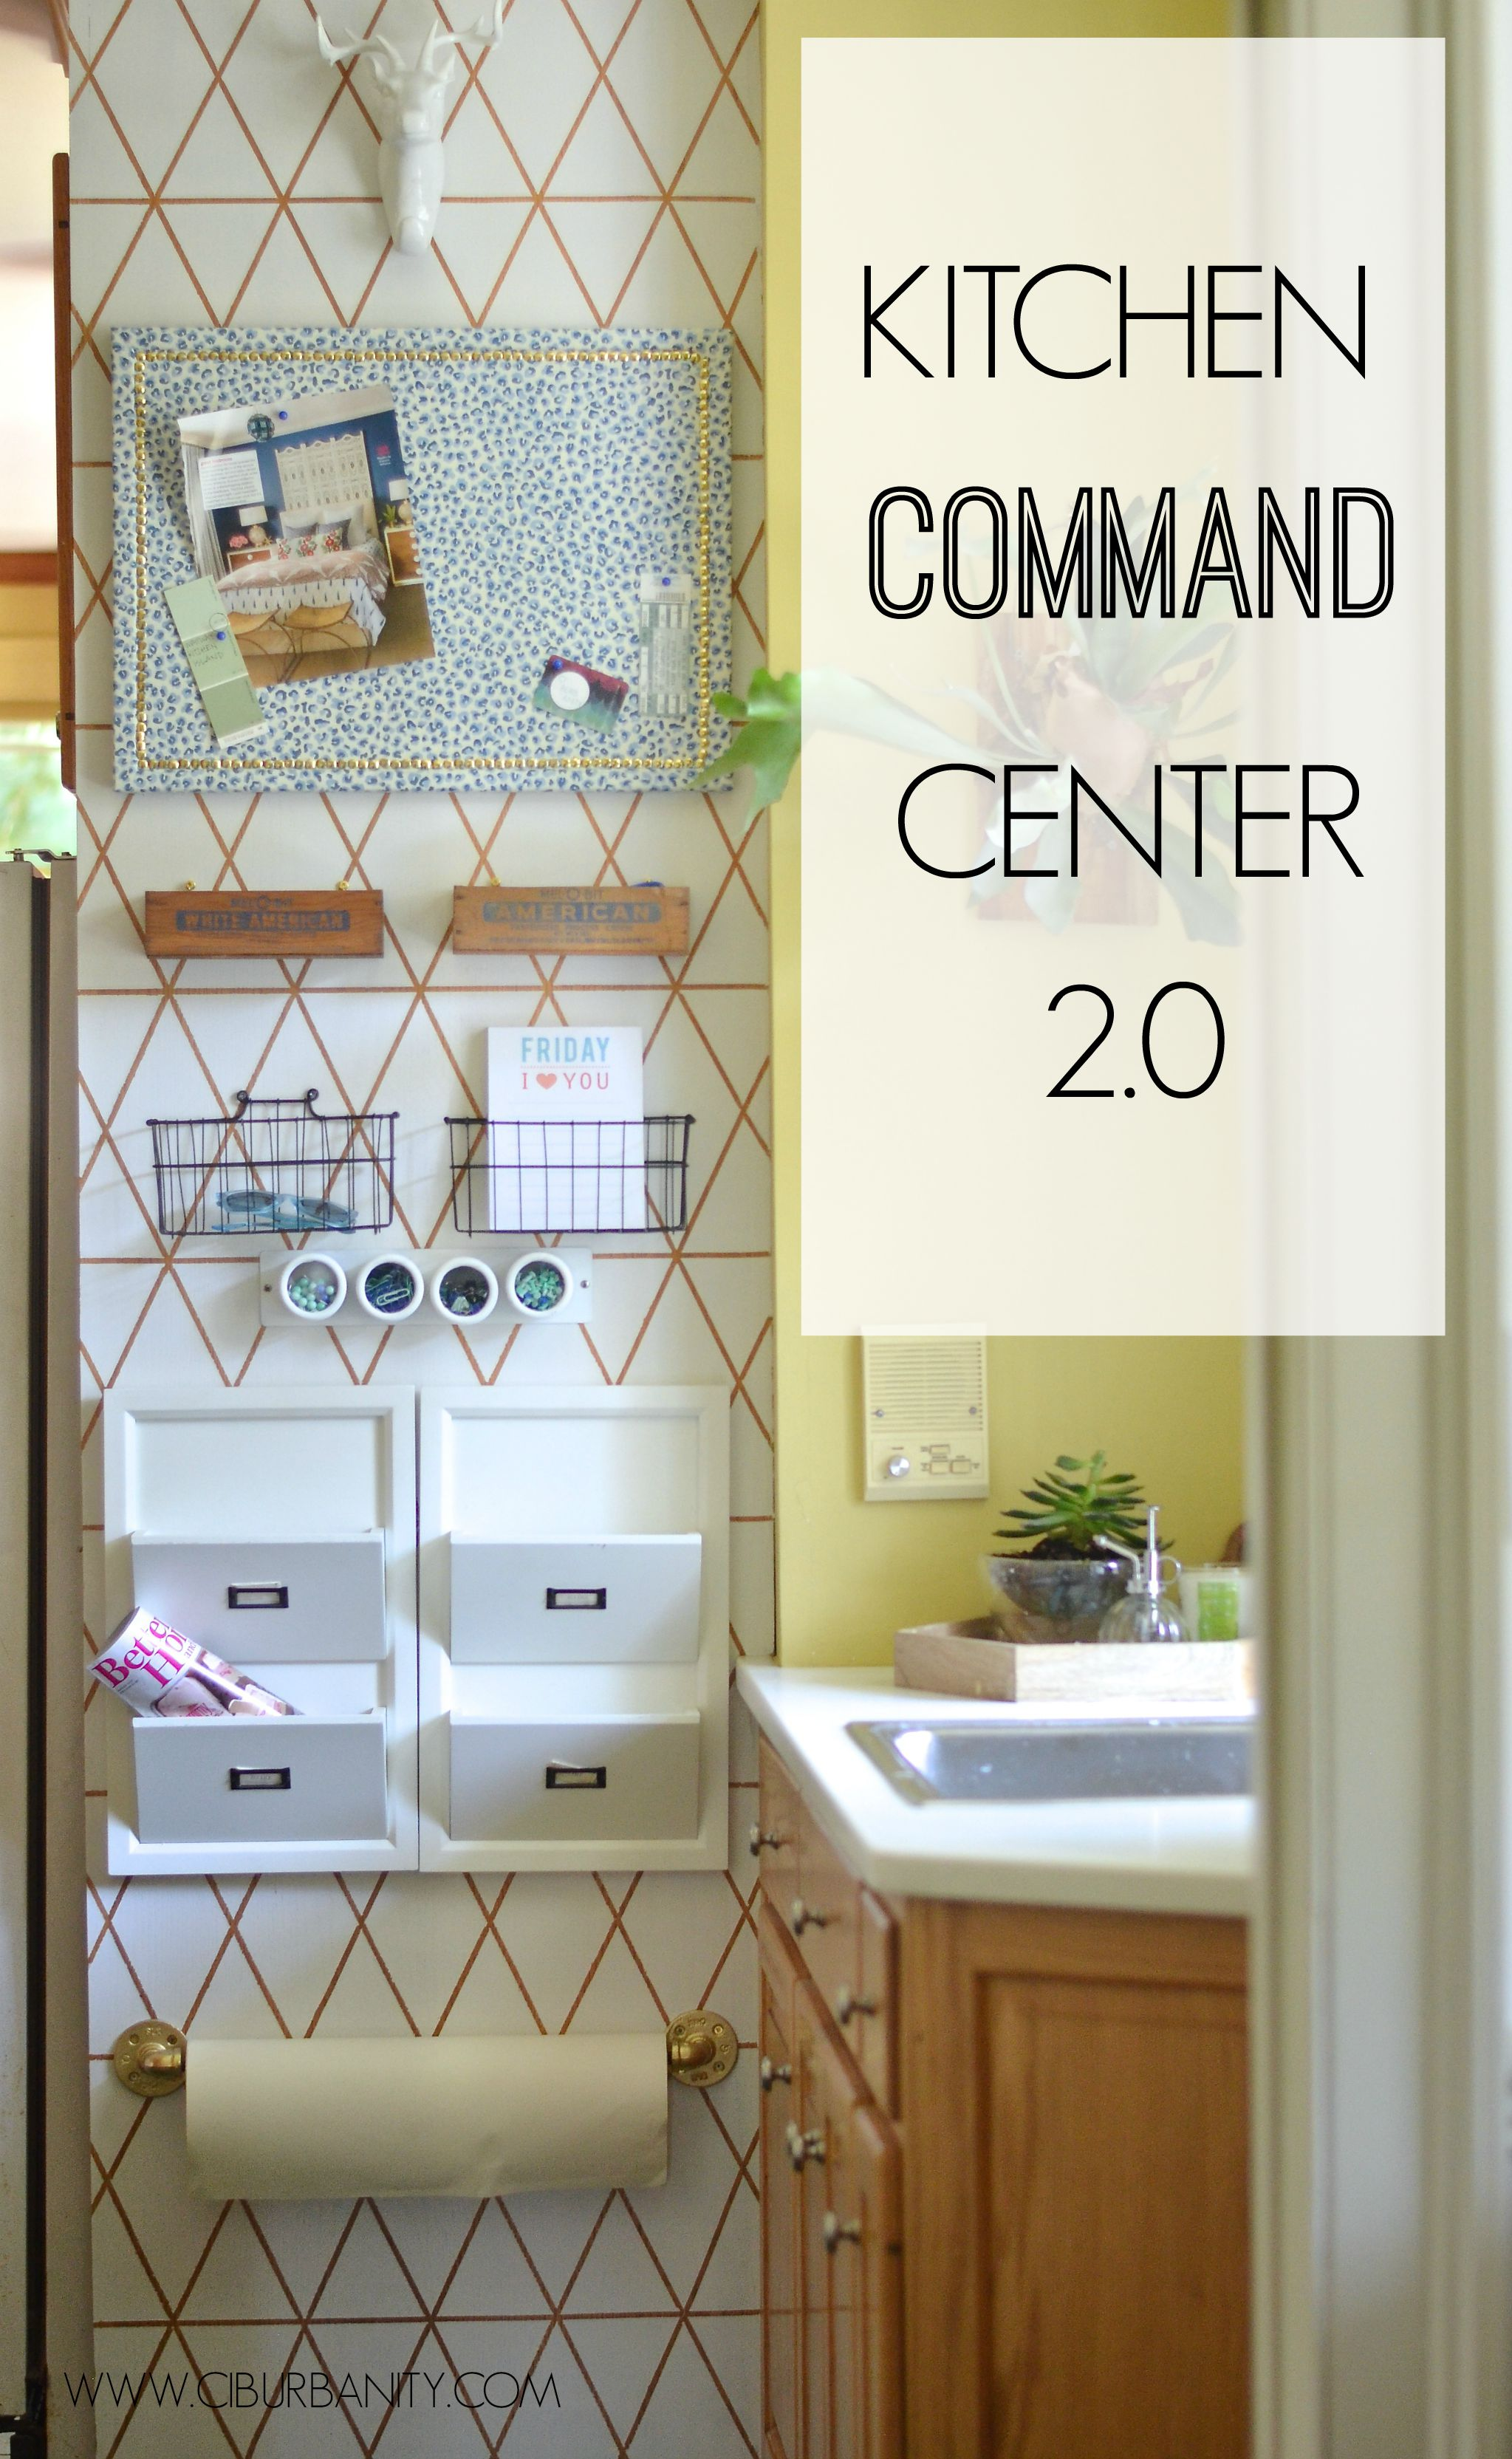 Awesome DIY Family Command Centers on kitchen pantry ideas, kitchen office ideas, kitchen bunker ideas, kitchen dining room ideas, kitchen home ideas, kitchen planning ideas, kitchen to do list ideas, kitchen organization, kitchen crate ideas, home mail center ideas, kitchen storage ideas, calendar center ideas, family message center ideas, grocery list ideas, kitchen mail center, kitchen wall mail organizer, open house ideas, kitchen diy ideas, kitchen ideas pinterest, organized pantry ideas,